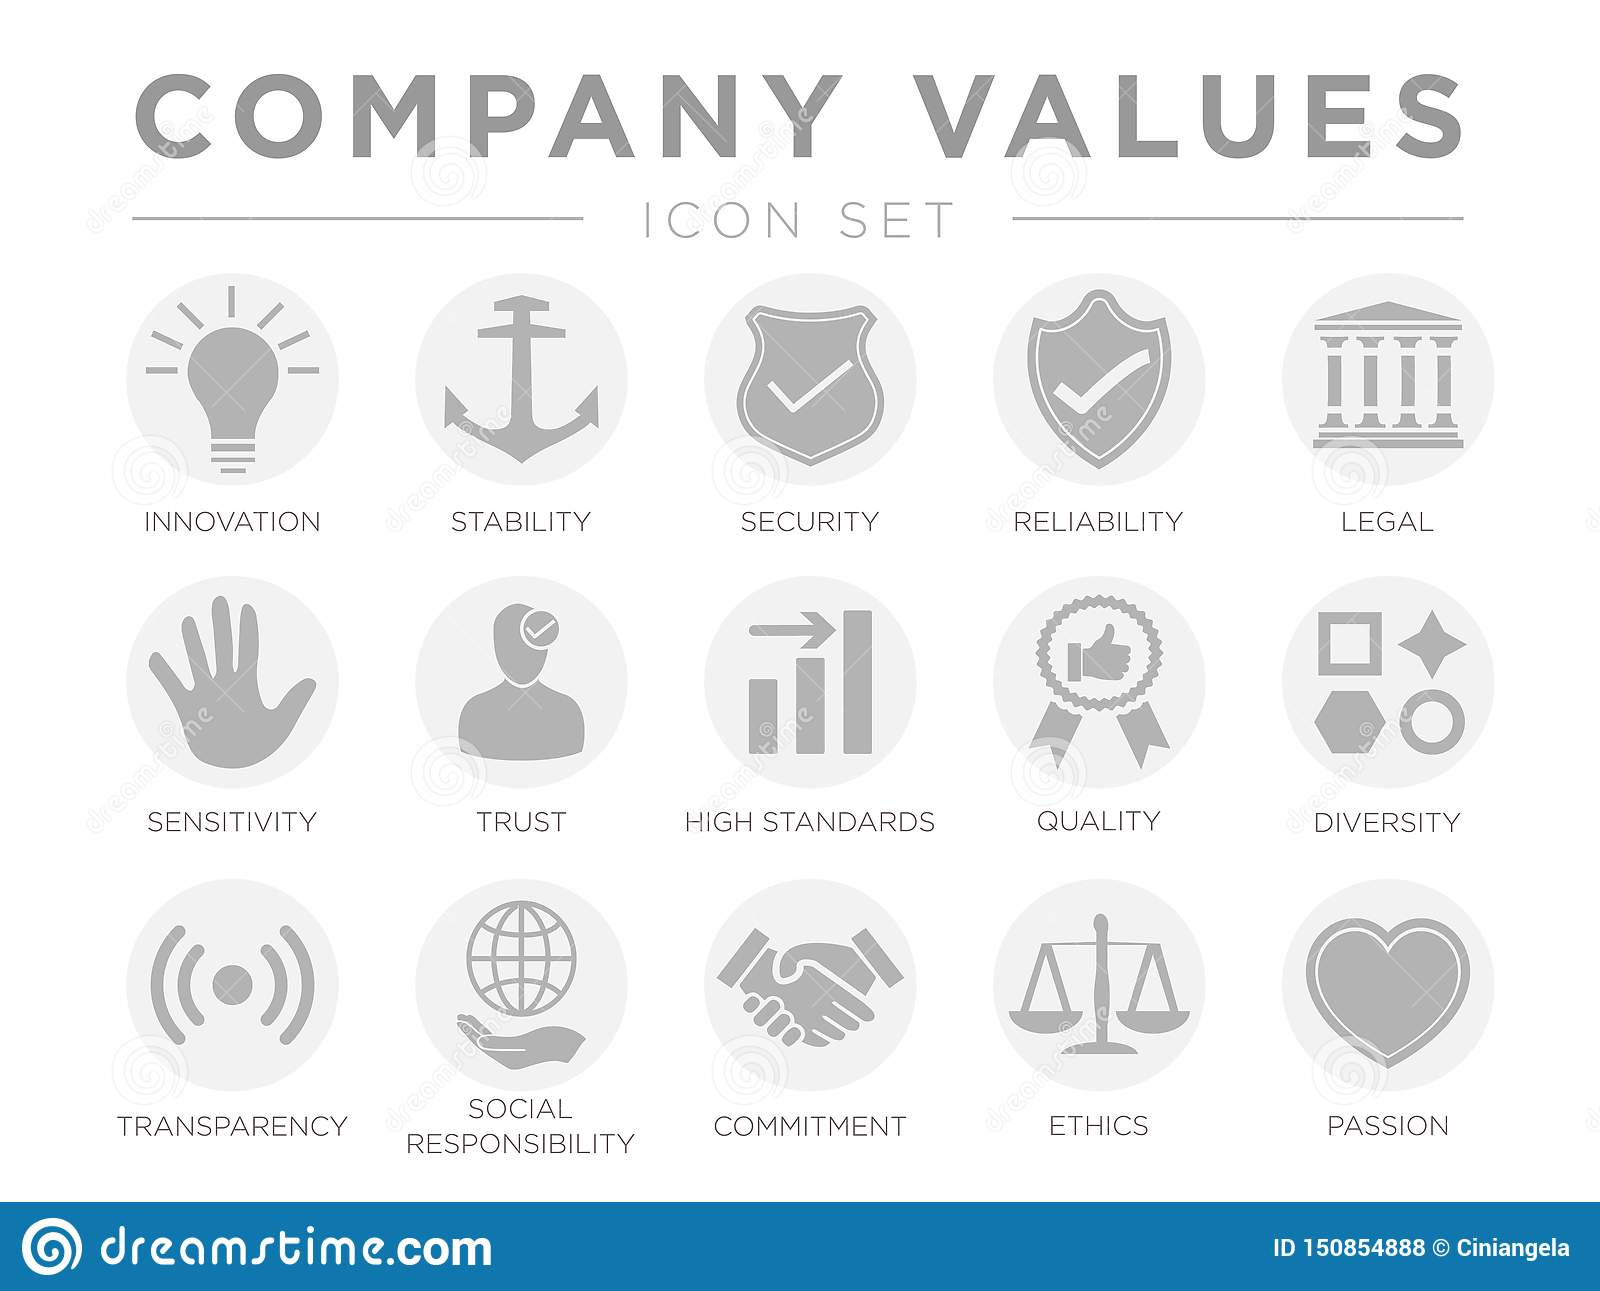 Business Company Values Gray Light Icon Set. Innovation, Stability, Security, Reliability, Legal, Sensitivity, Trust, High